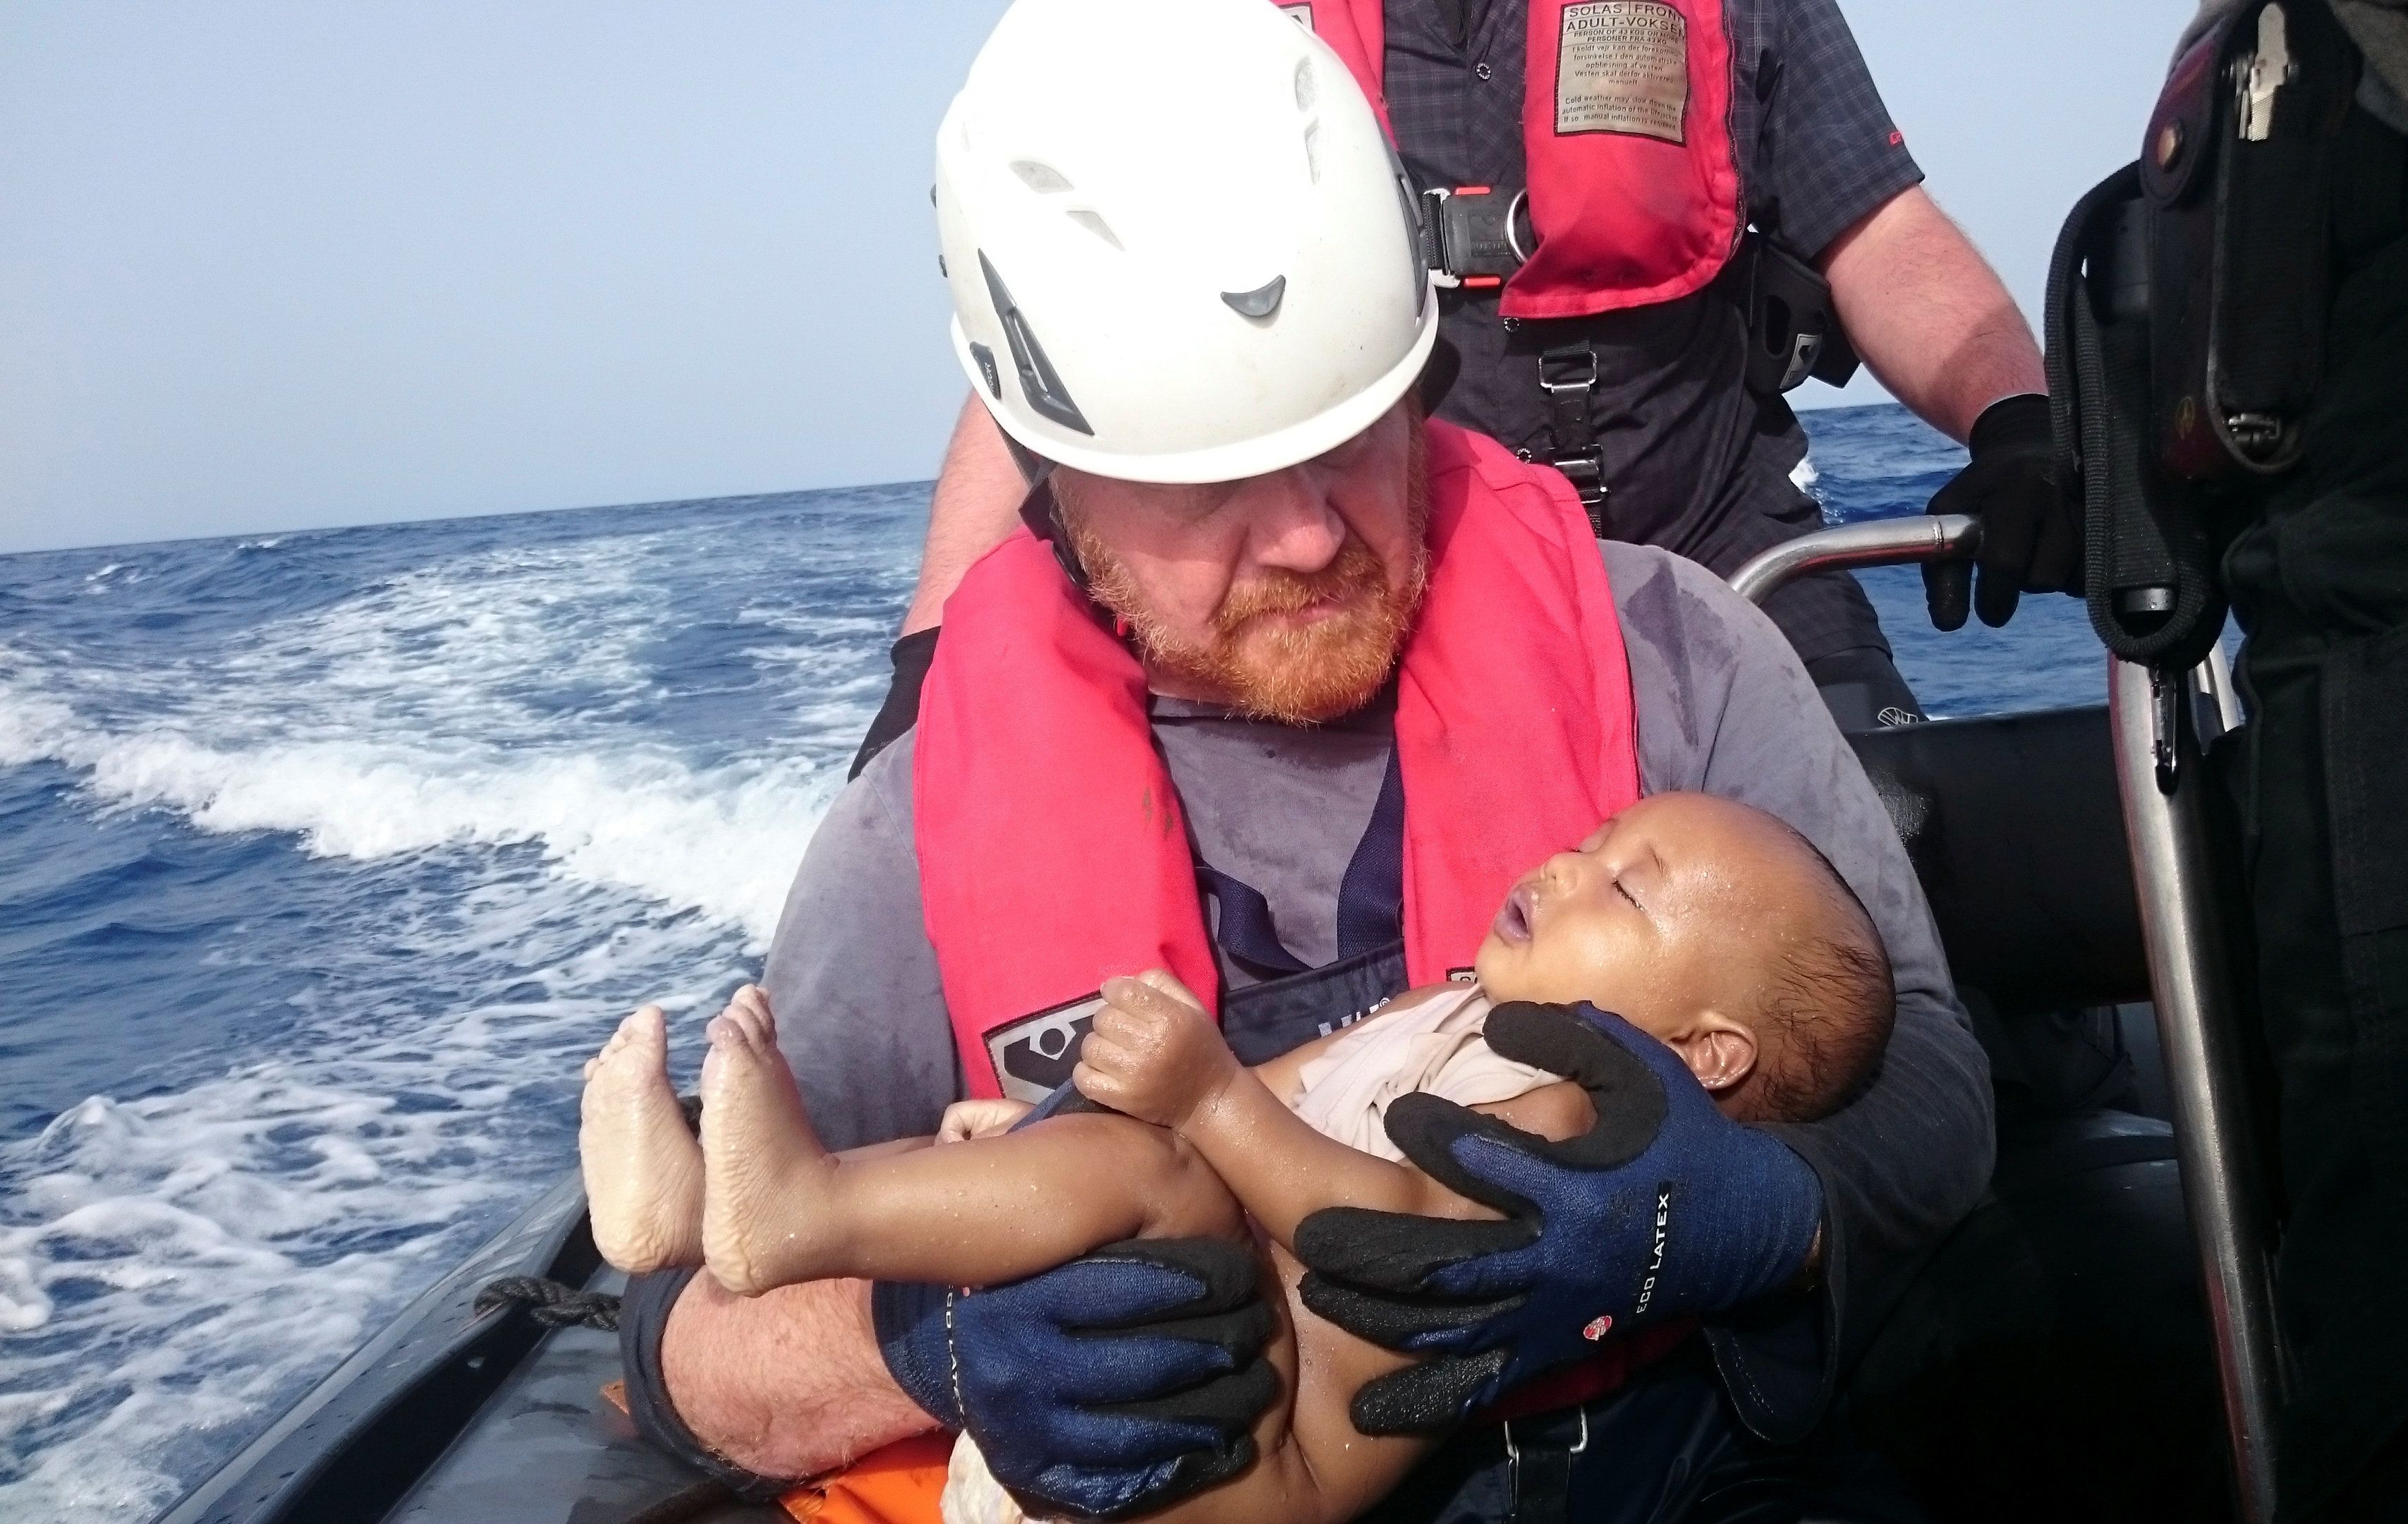 ATTENTION EDITORS - VISUAL COVERAGE OF SCENES OF INJURY OR DEATHA German rescuer from the humanitarian organisation Sea-Watch holds a drowned migrant baby, off the Libyan cost May 27, 2016. The baby, who appears to be no more than a year old, was pulled from the sea after a wooden boat capsized last Friday.    Mandatory Credit   Christian Buettner/Eikon Nord GmbH Germany/Handout via REUTERS    ATTENTION EDITORS - THIS IMAGE WAS PROVIDED BY A THIRD PARTY. FOR EDITORIAL USE ONLY. NO RESALES. NO ARCHIVES. MANDATORY CREDIT. TEMPLATE OUT.